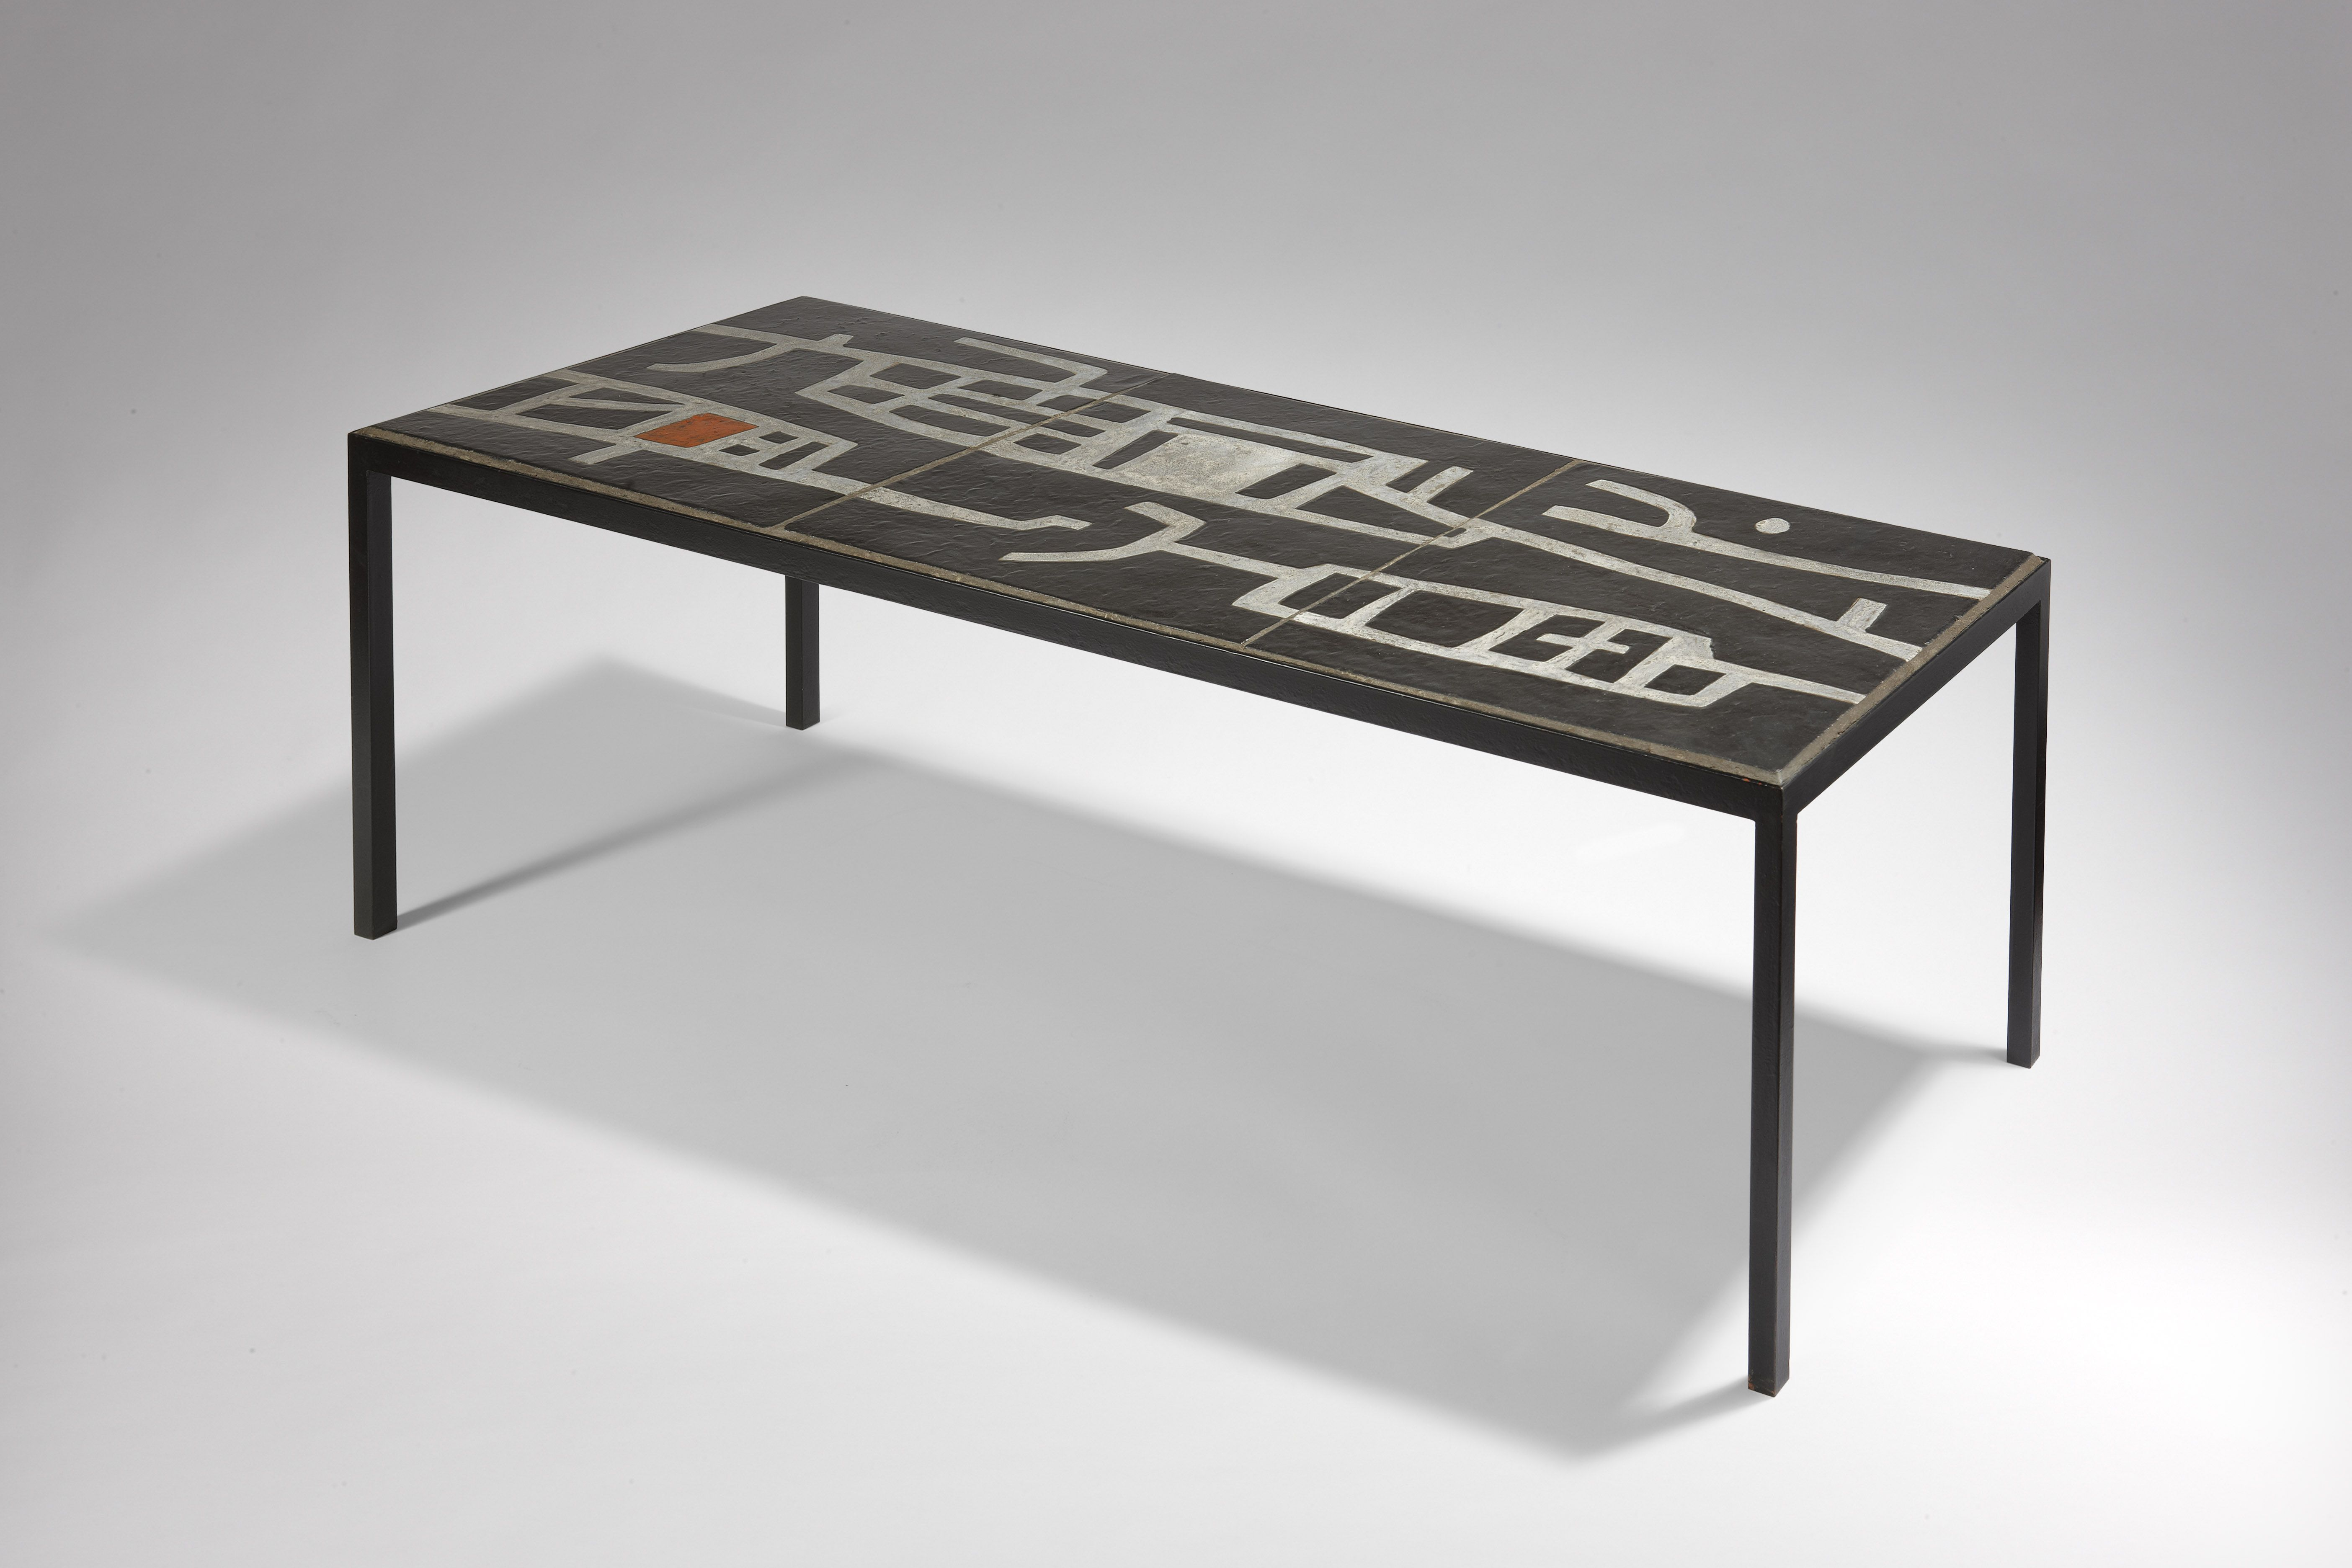 Galerie Chastel Marechal Archives Andre Borderie Table Furniture Tile Tables Coffee Table